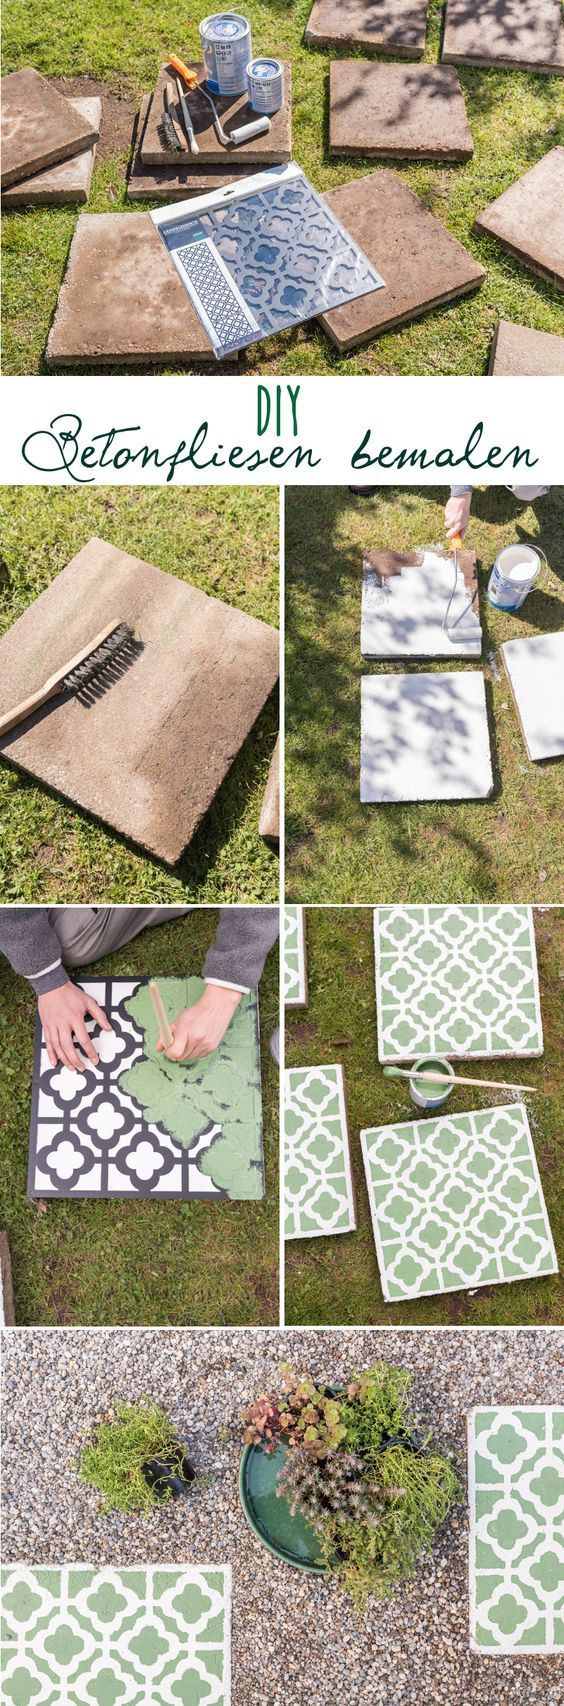 DIY instructions for homemade upcycling concrete tiles in Moroccan look ...